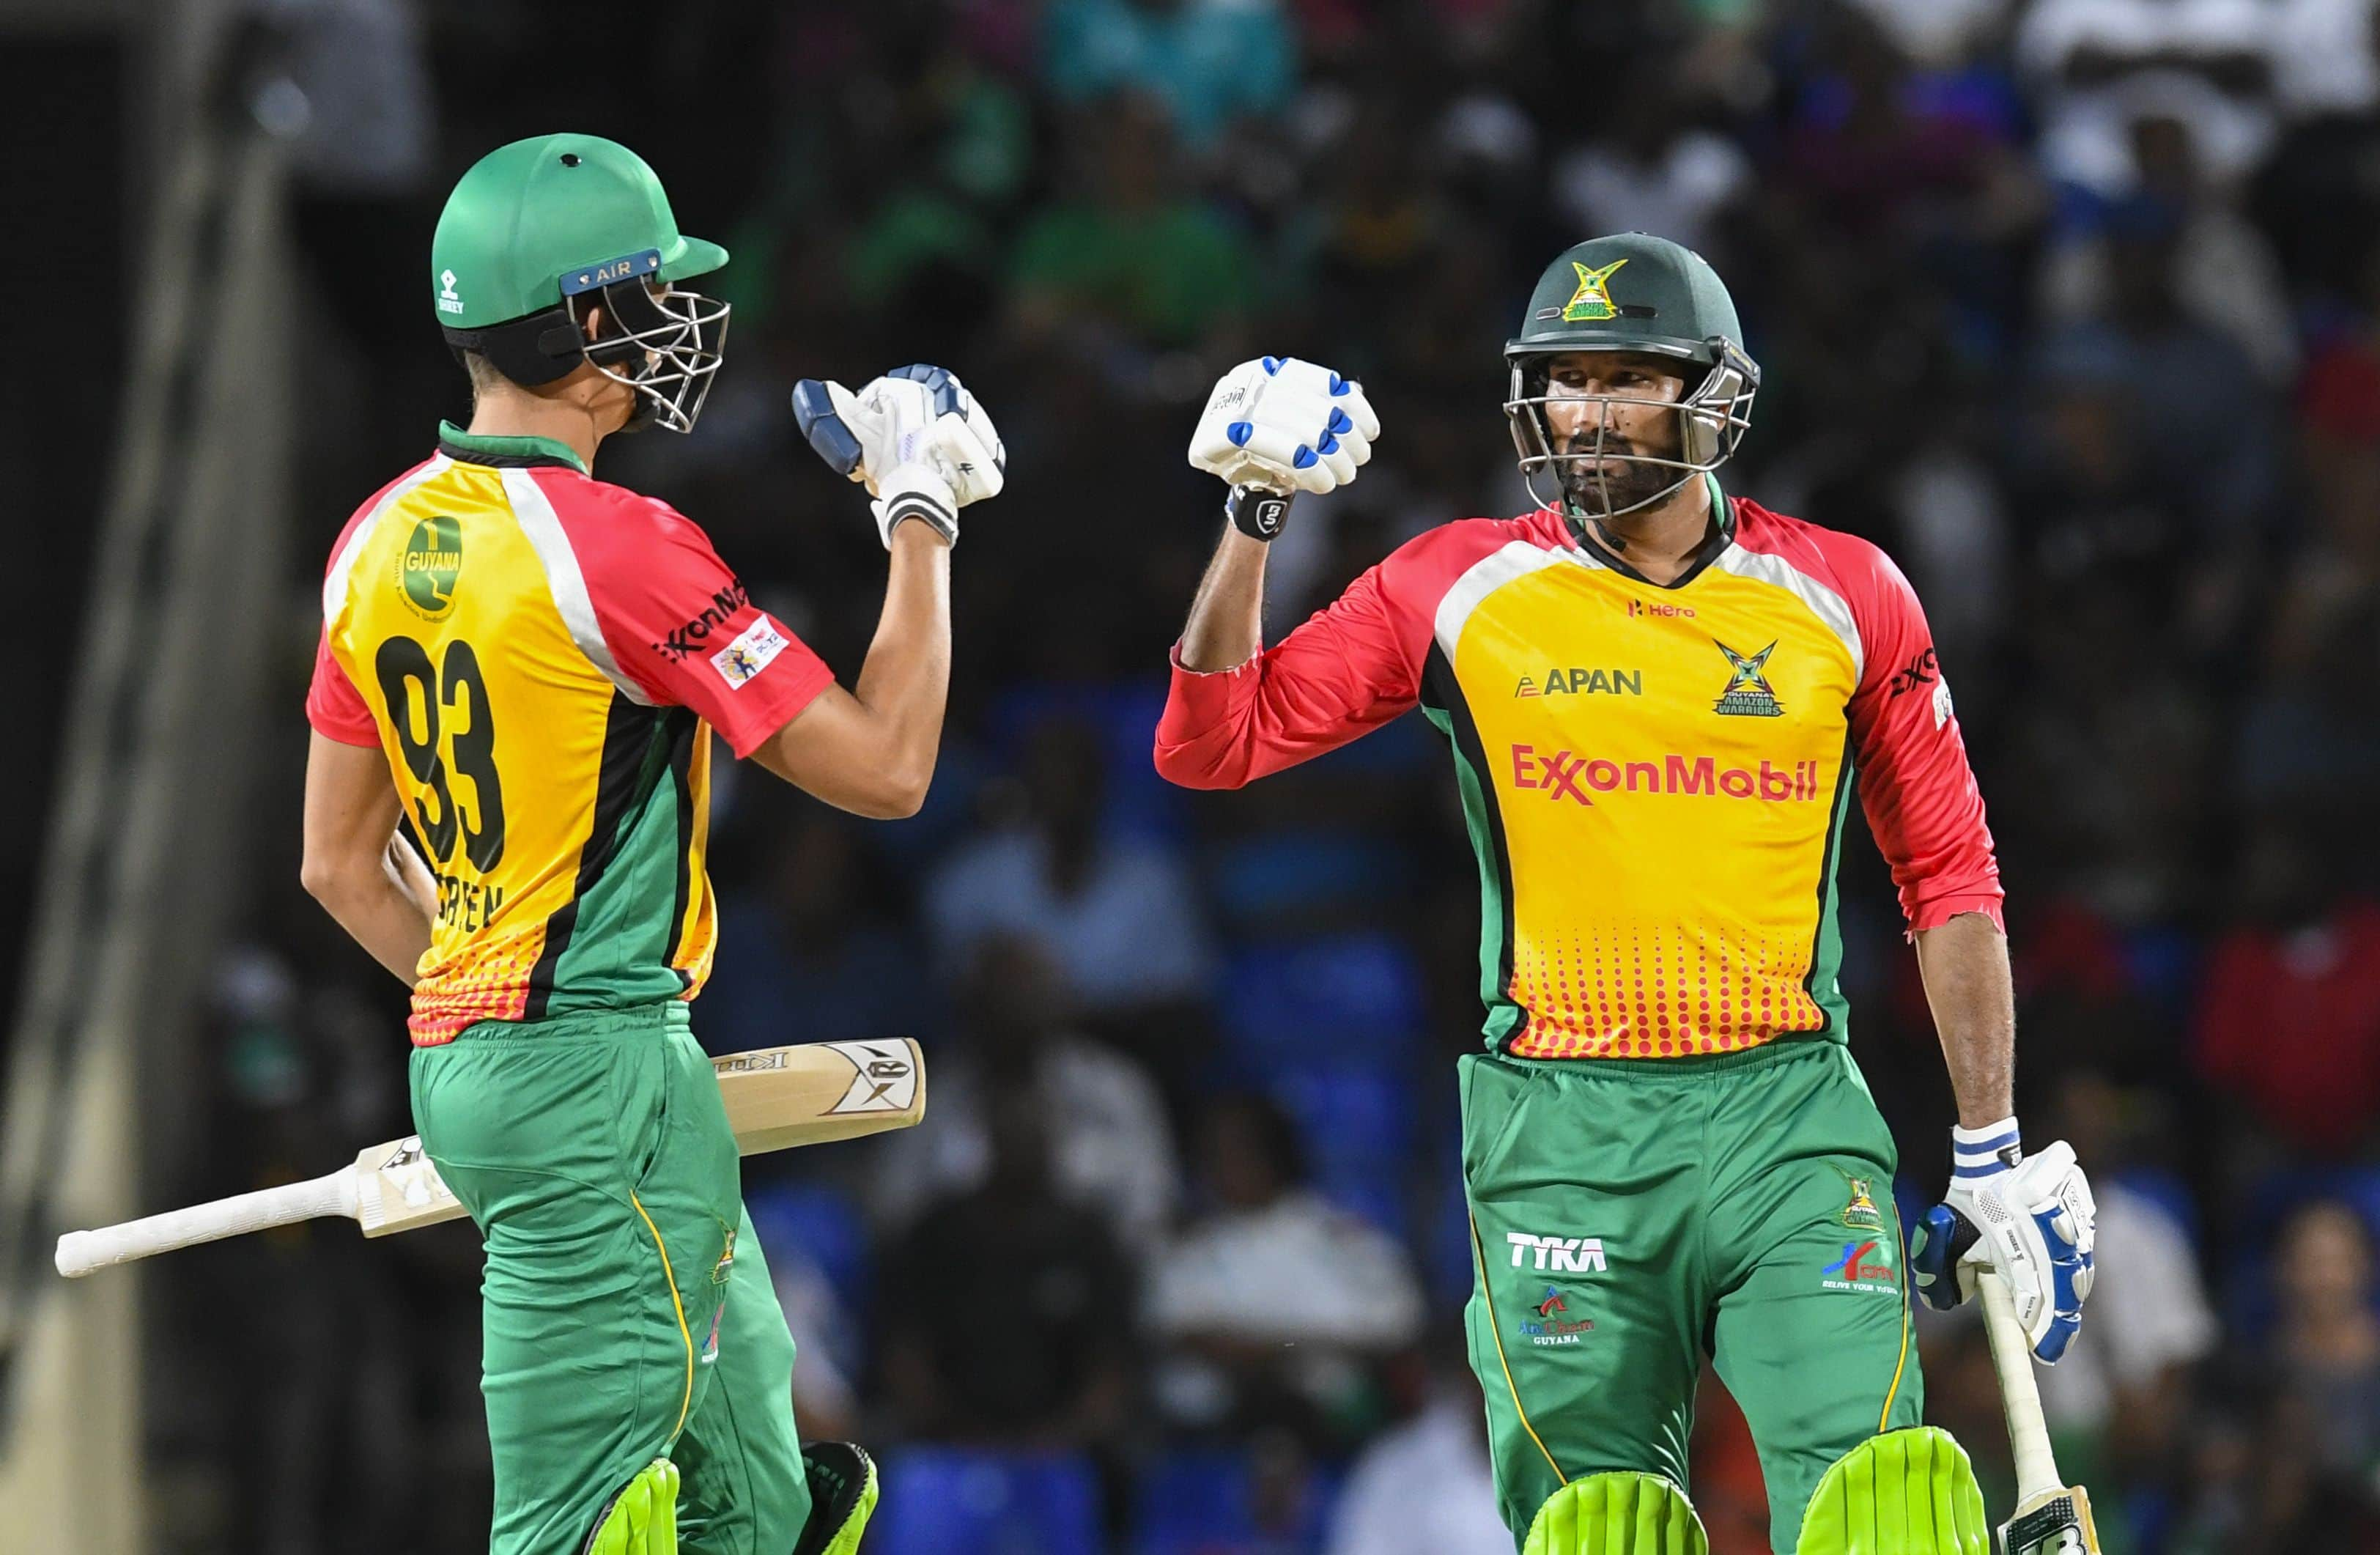 CPL 2018: Imran Tahir, Sohail Tanvir star in Guyana Amazon Warriors win